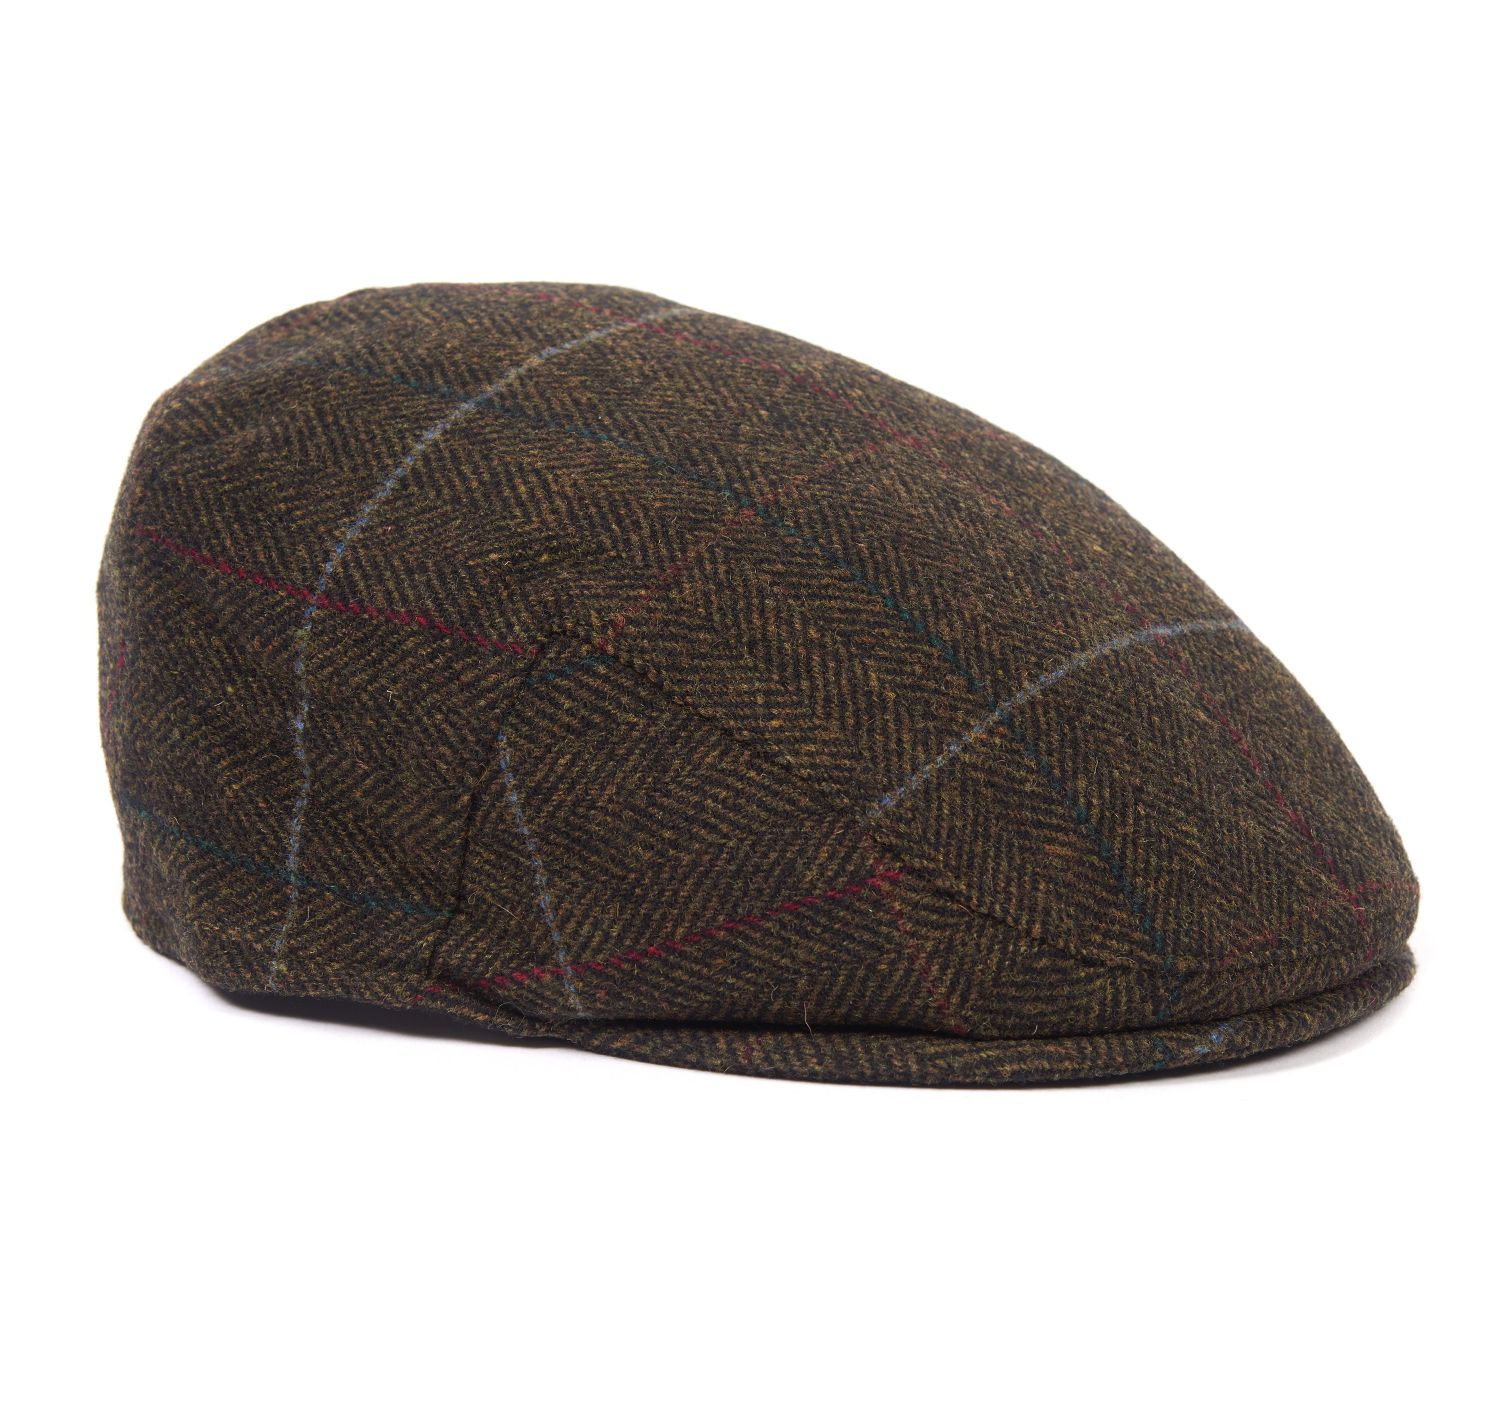 Barbour Barbour Crieff Cap Olive Barbour Lifestyle: from the Classic capsule